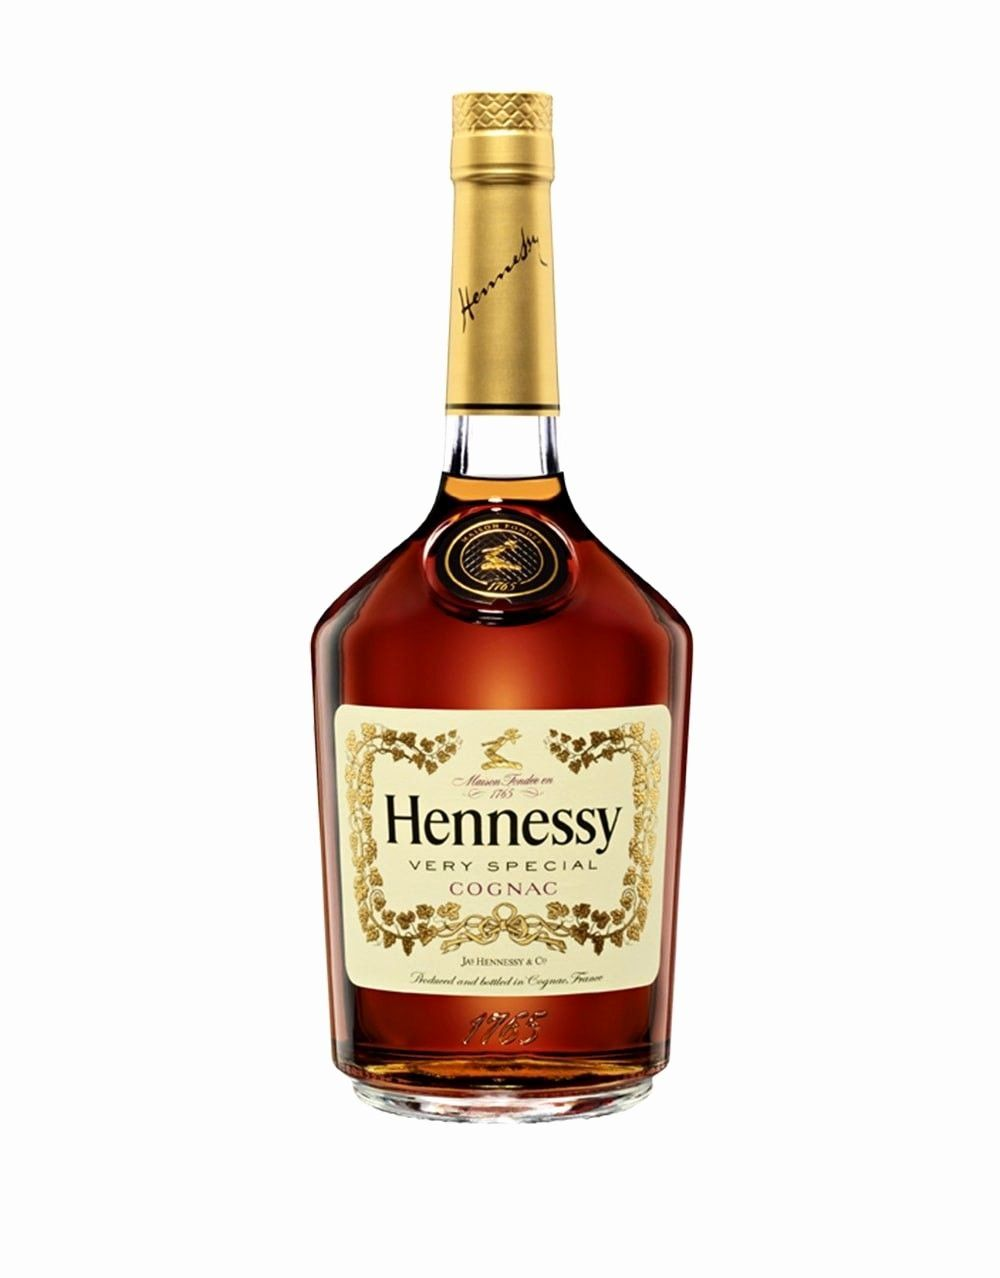 Blank Hennessy Label Template : blank, hennessy, label, template, Hennessy, Bottle, Label, Template, Fresh, Liquor, Labels,, Template,, Templates